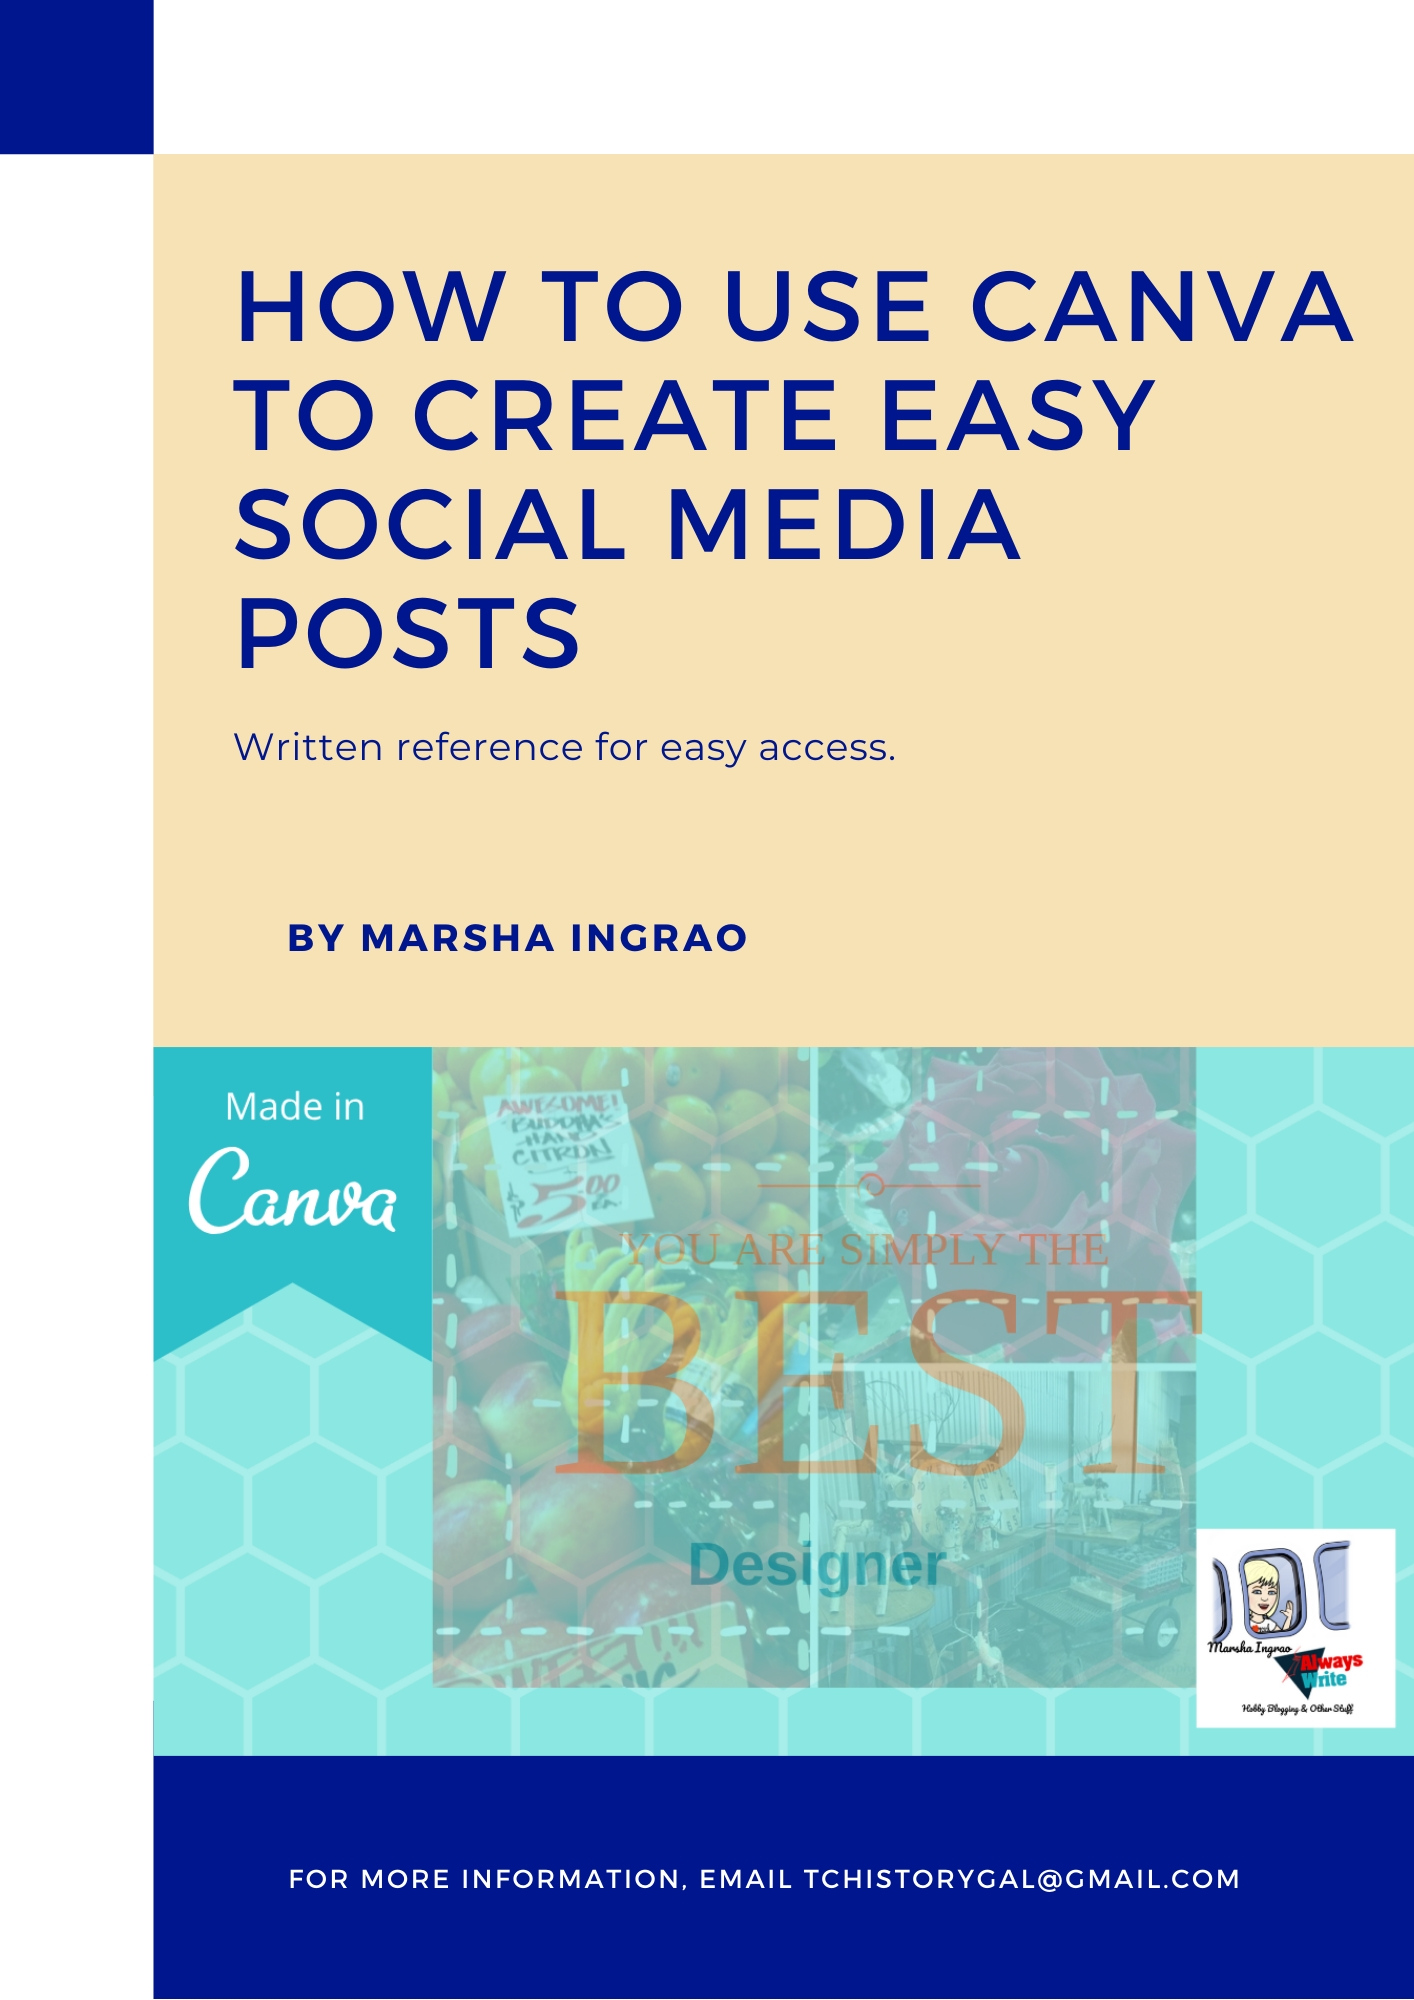 Use Canva to Create Social Media